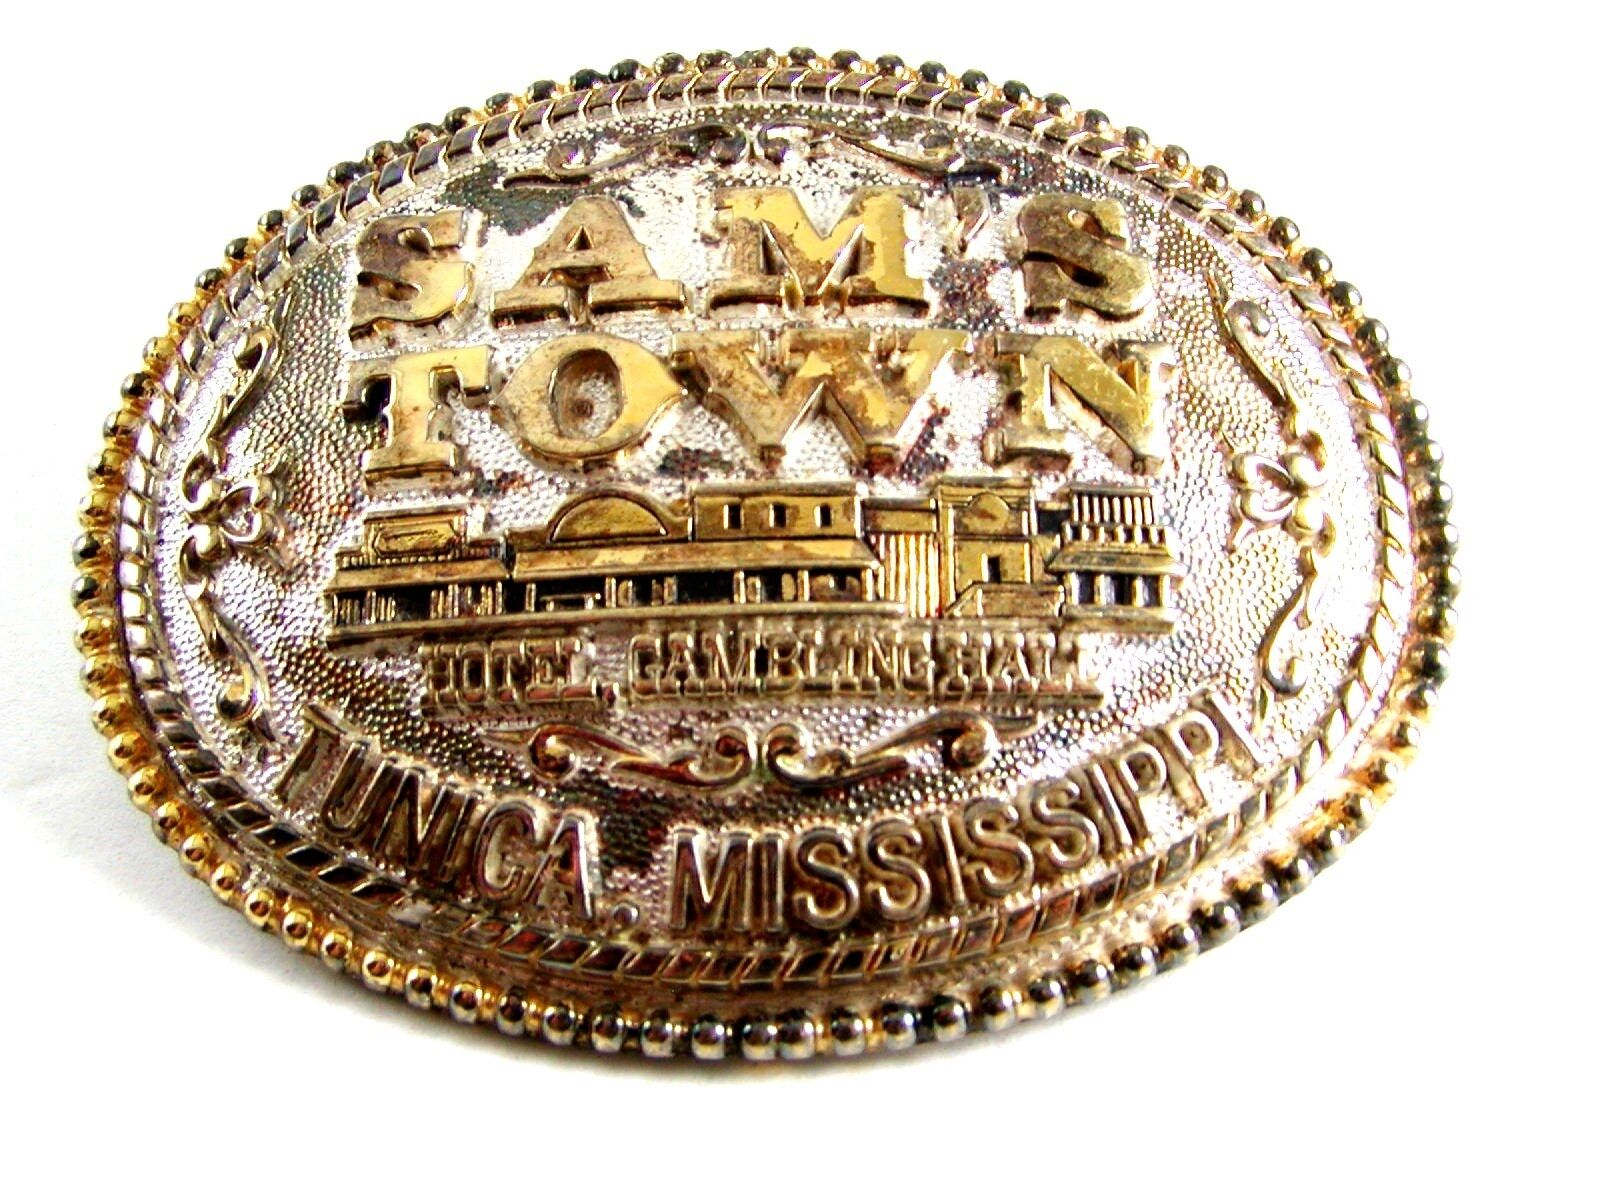 Sam's Town Tunica Mississippi Belt Buckle by ADM 12022013